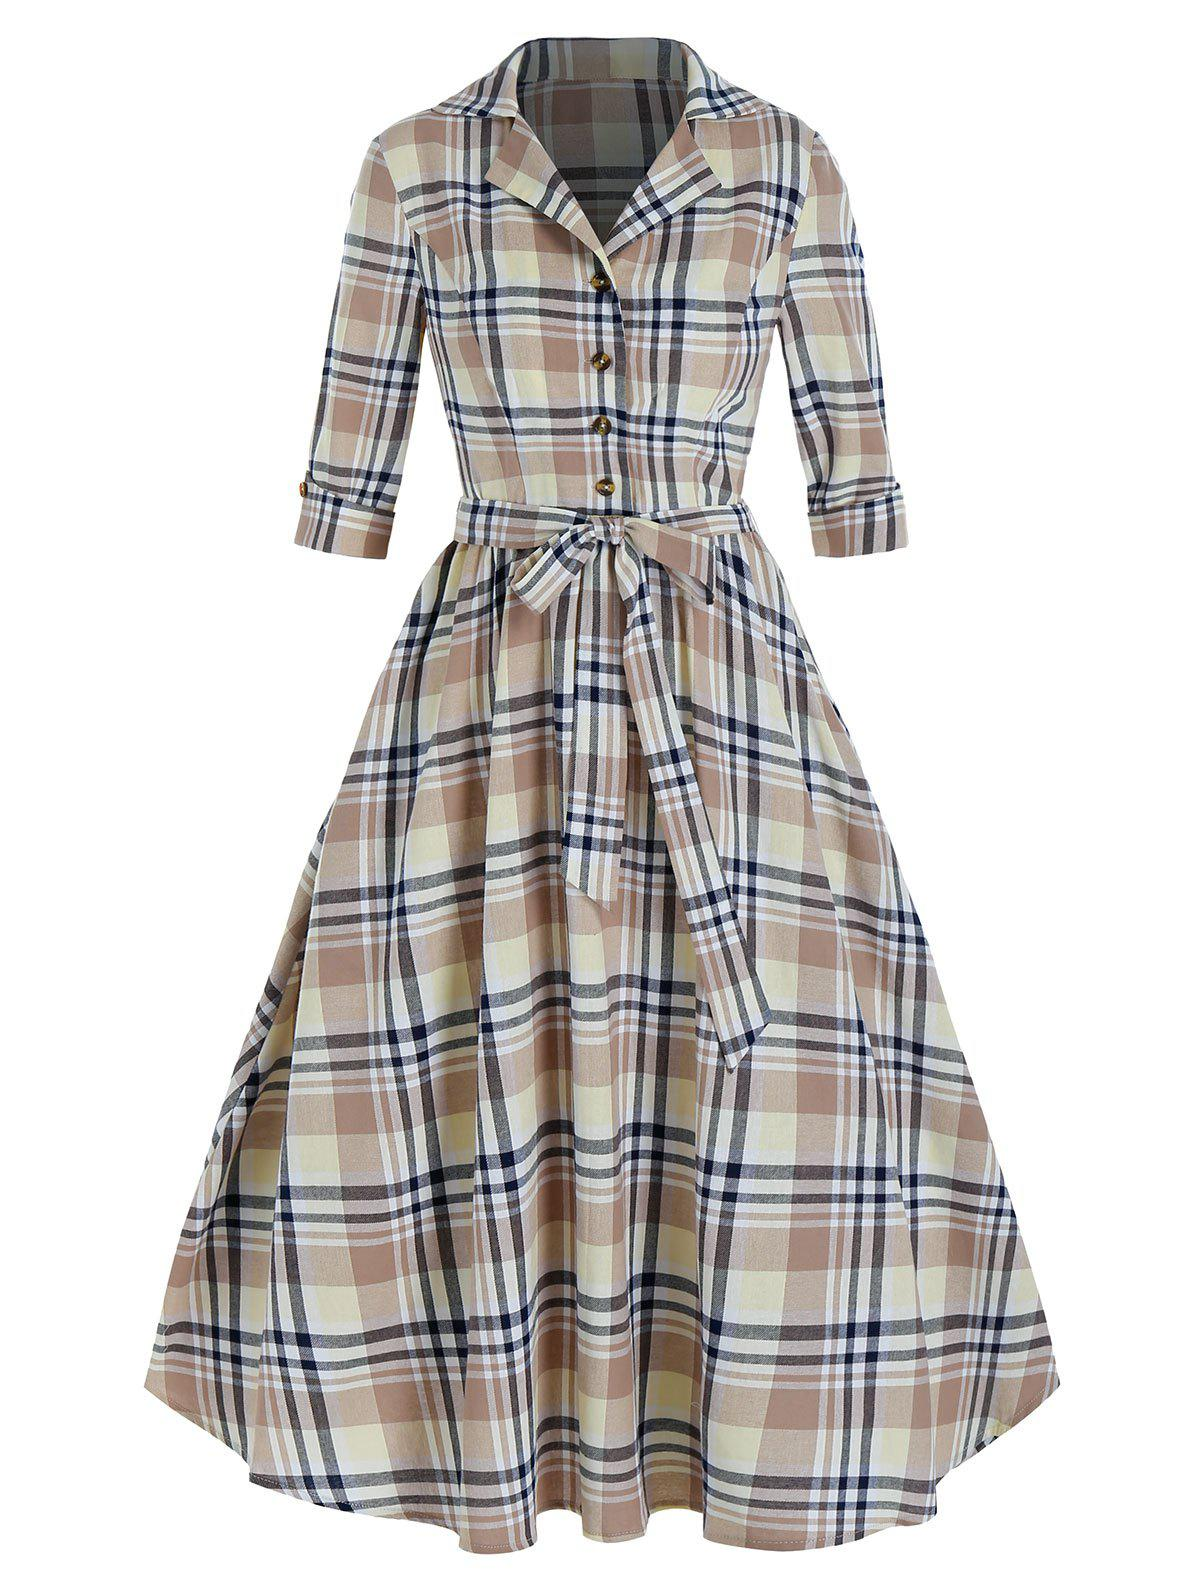 Unique Plaid Print Lapel Belted Vintage Dress